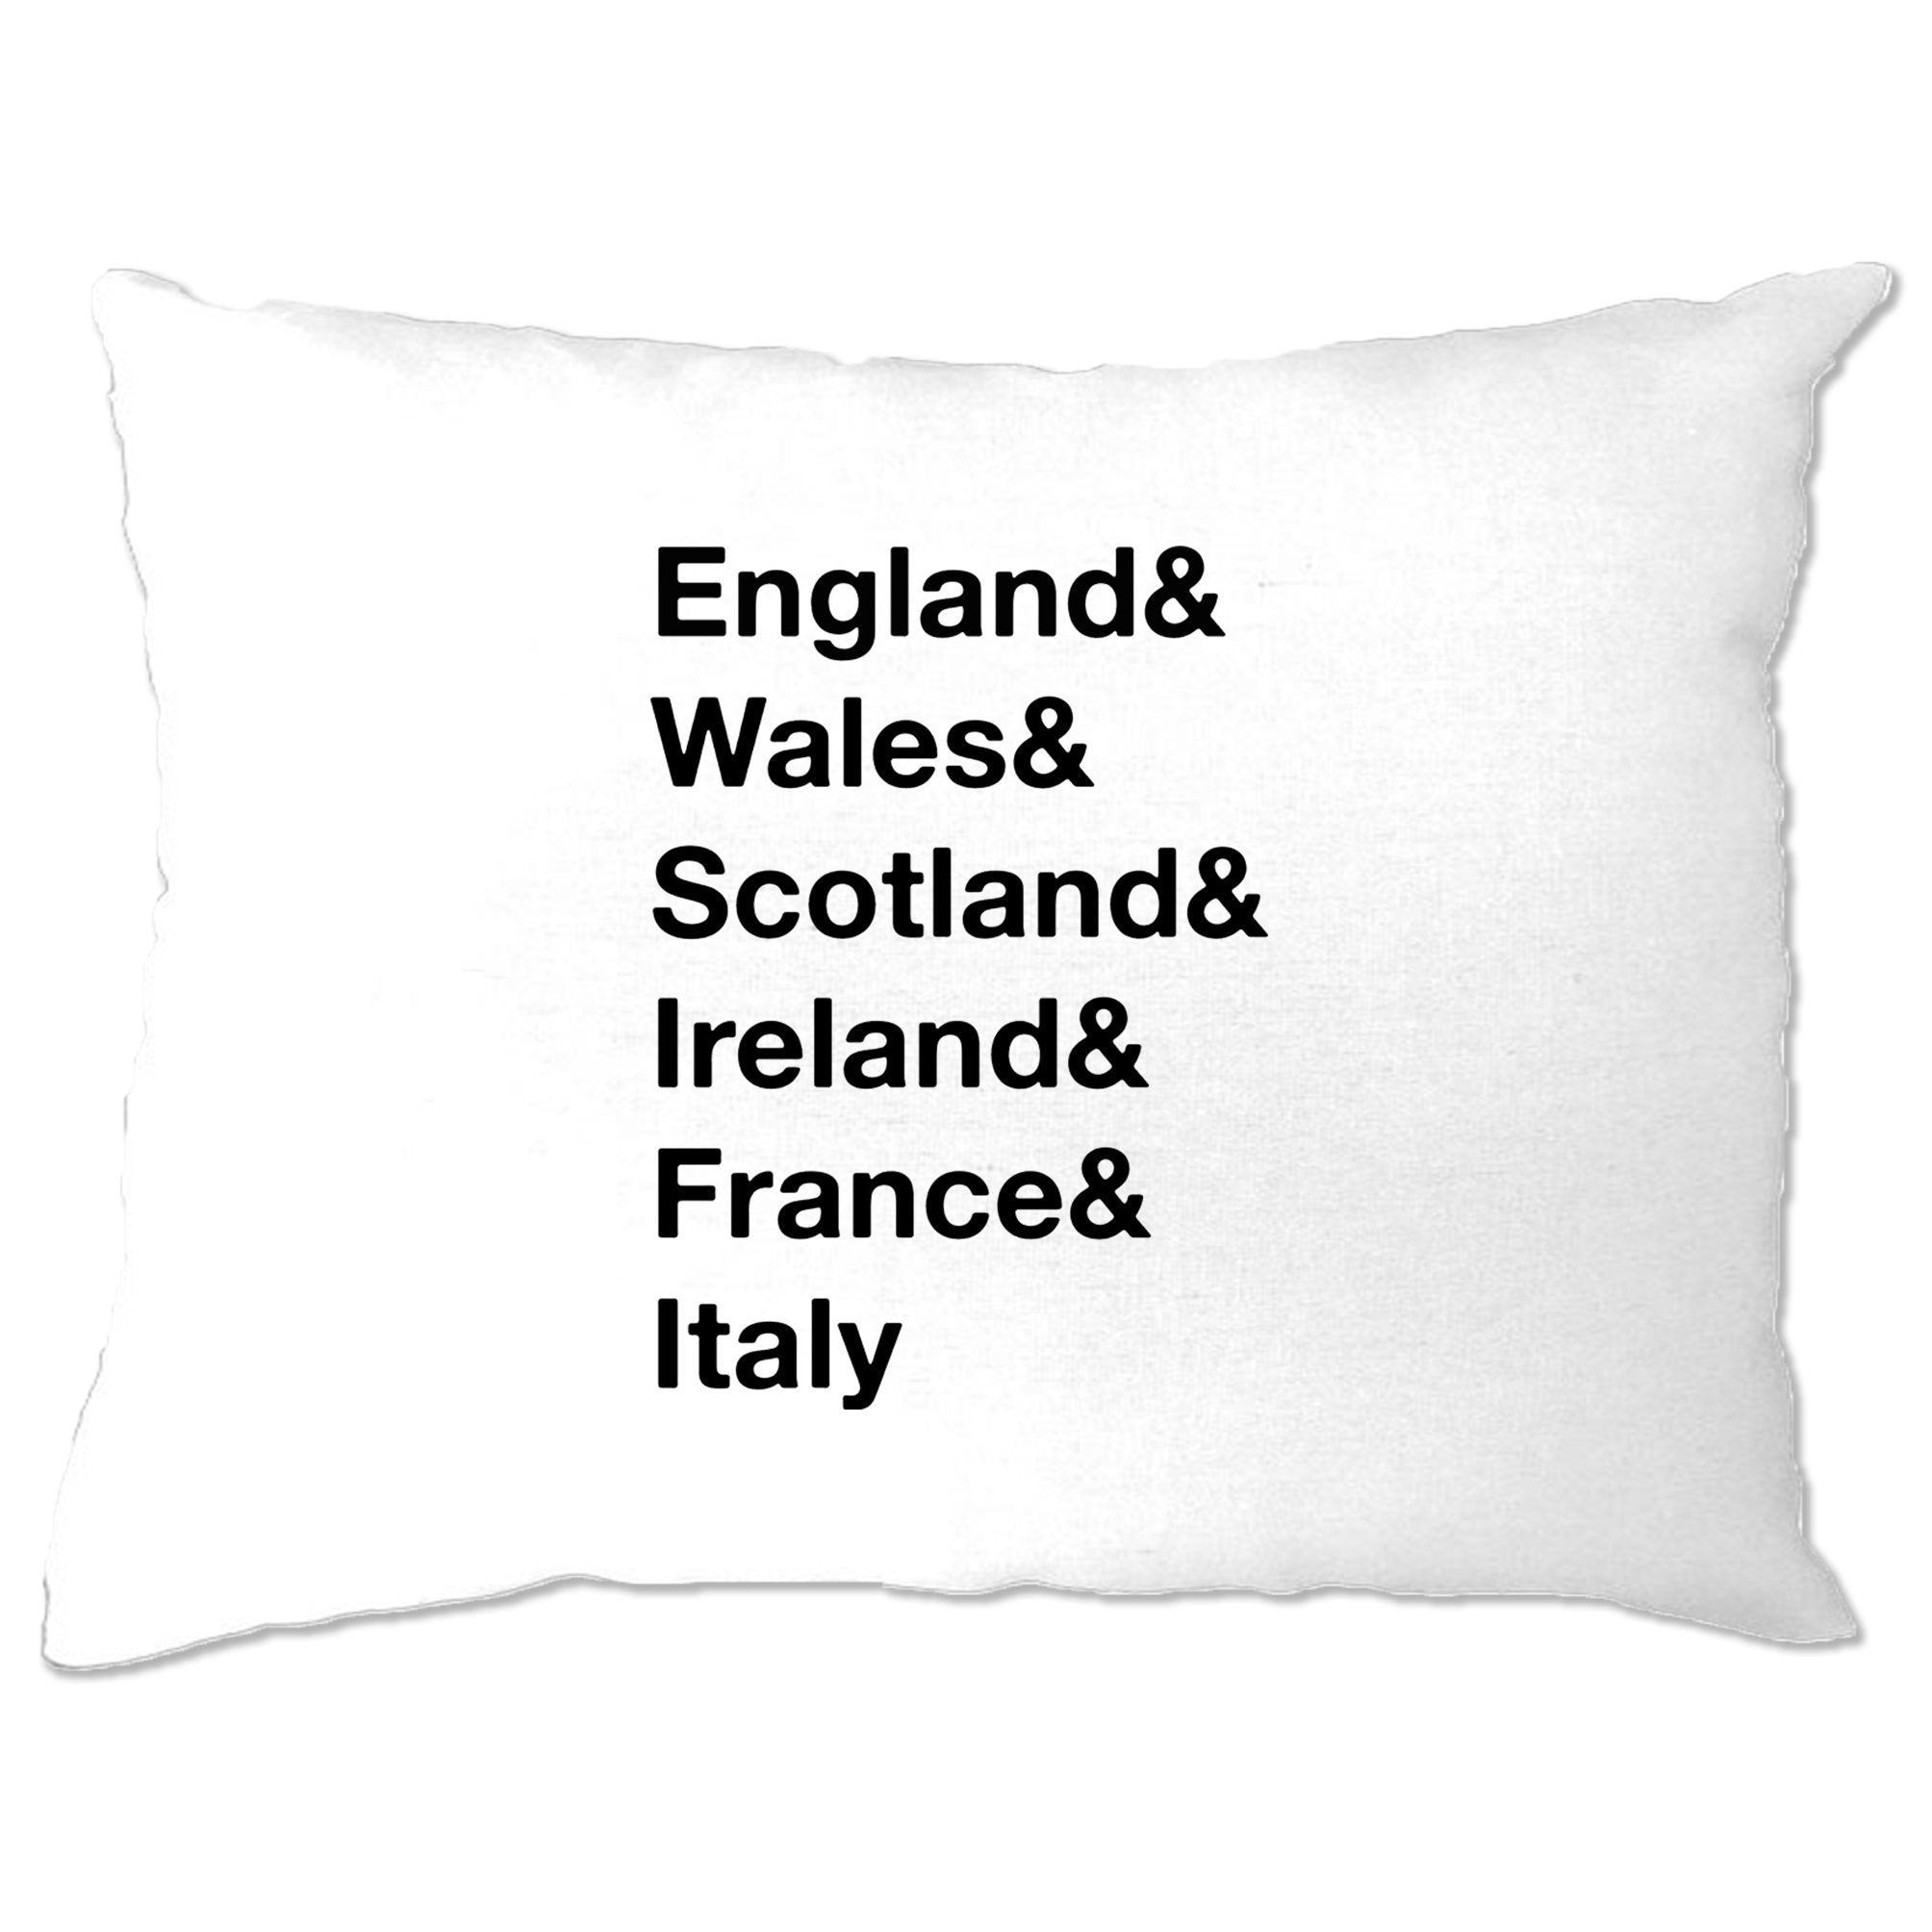 The Six Nations Pillow Case England, Wales, Scotland